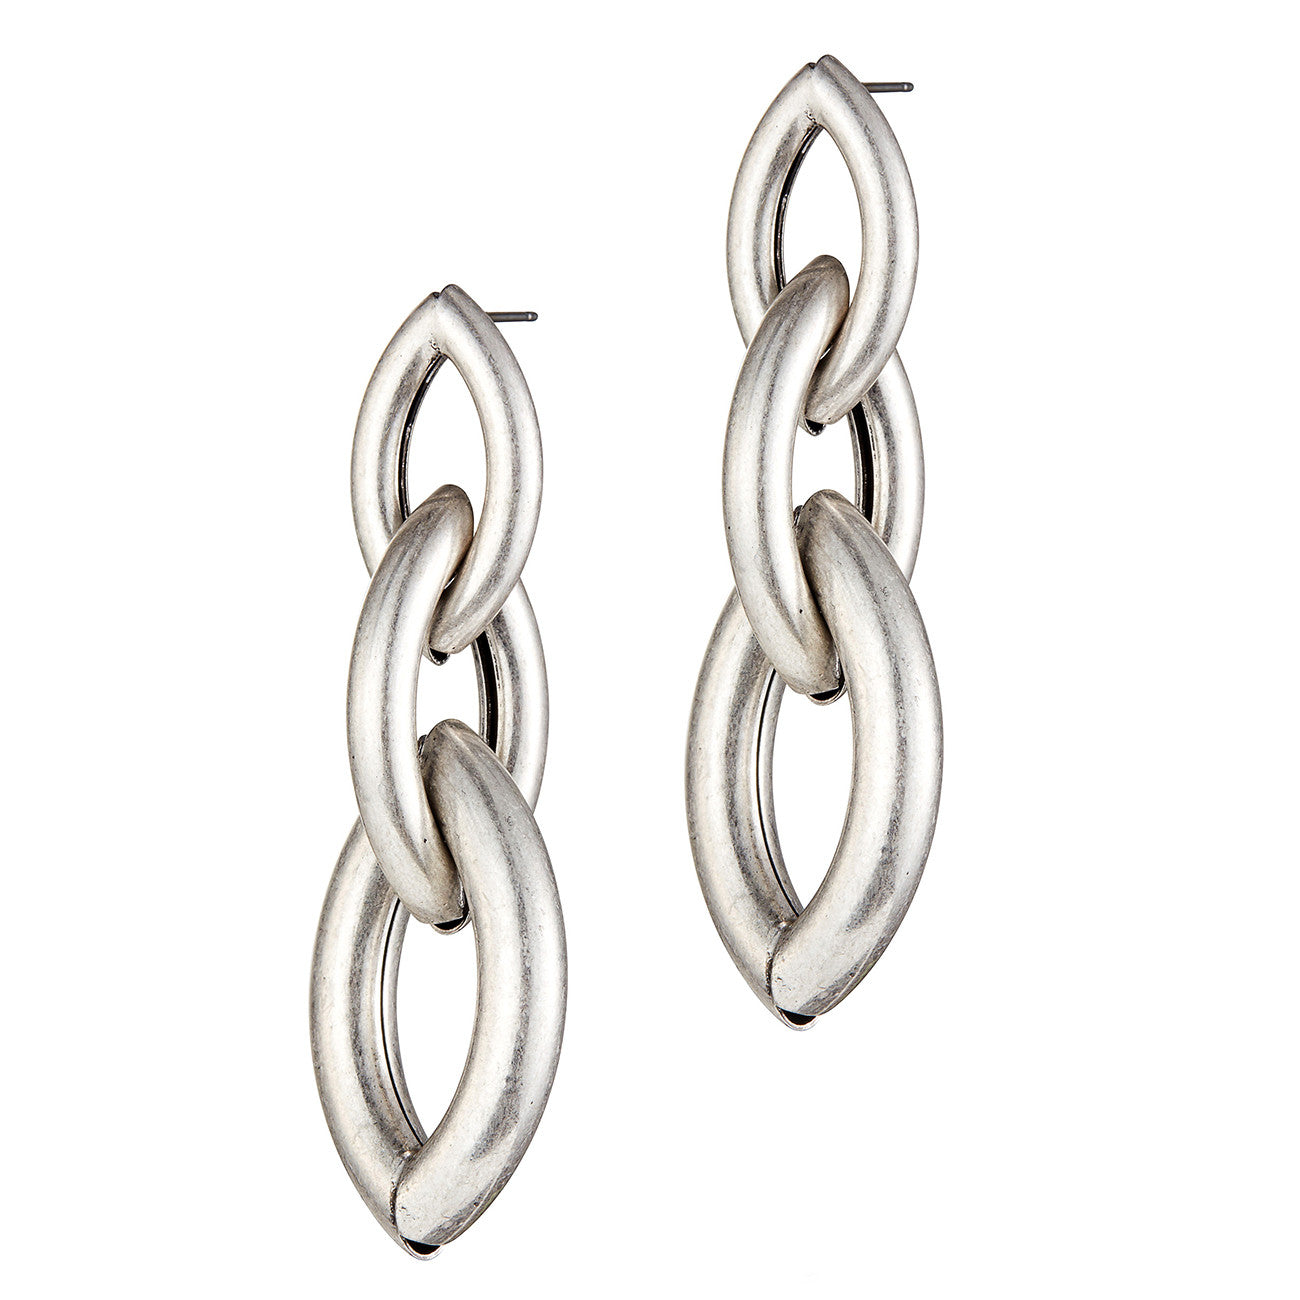 Sloane Earrings by Jenny Bird in Oxidized Silver